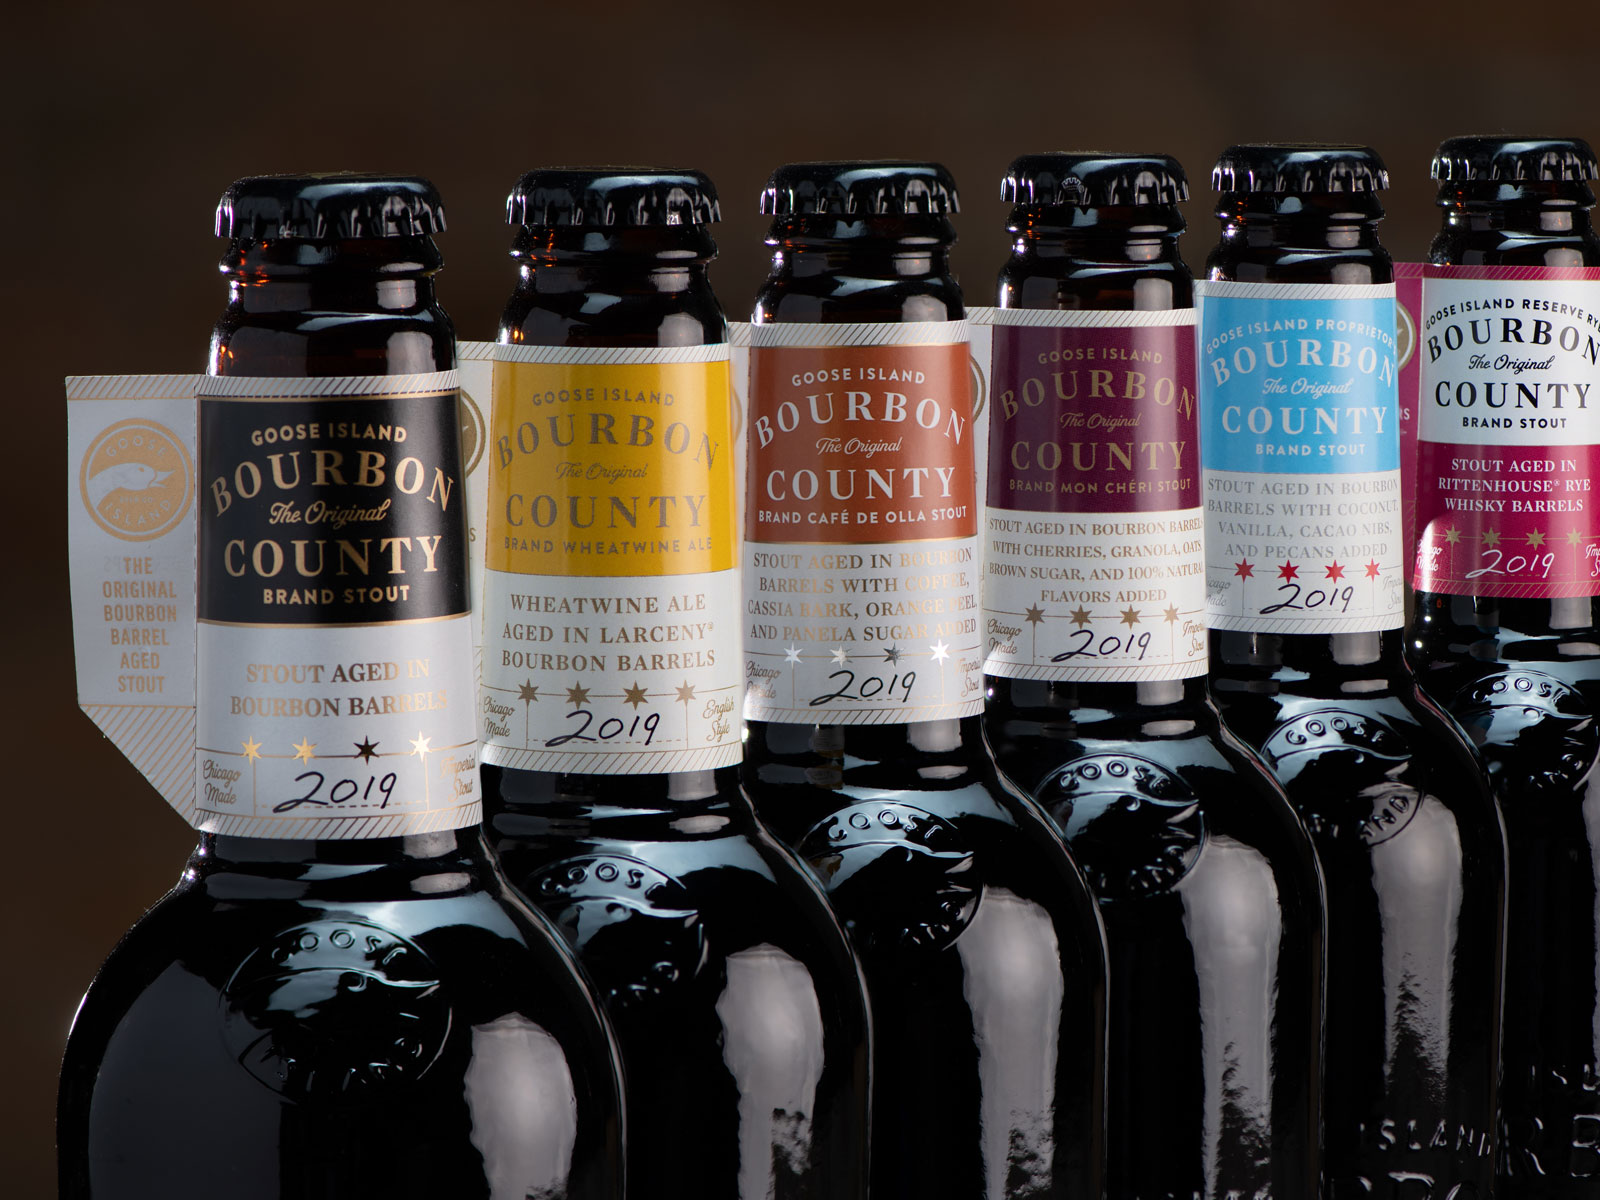 2019-Goose-Island-Bourbon-County-Stout-FT-BLOG1119.jpg